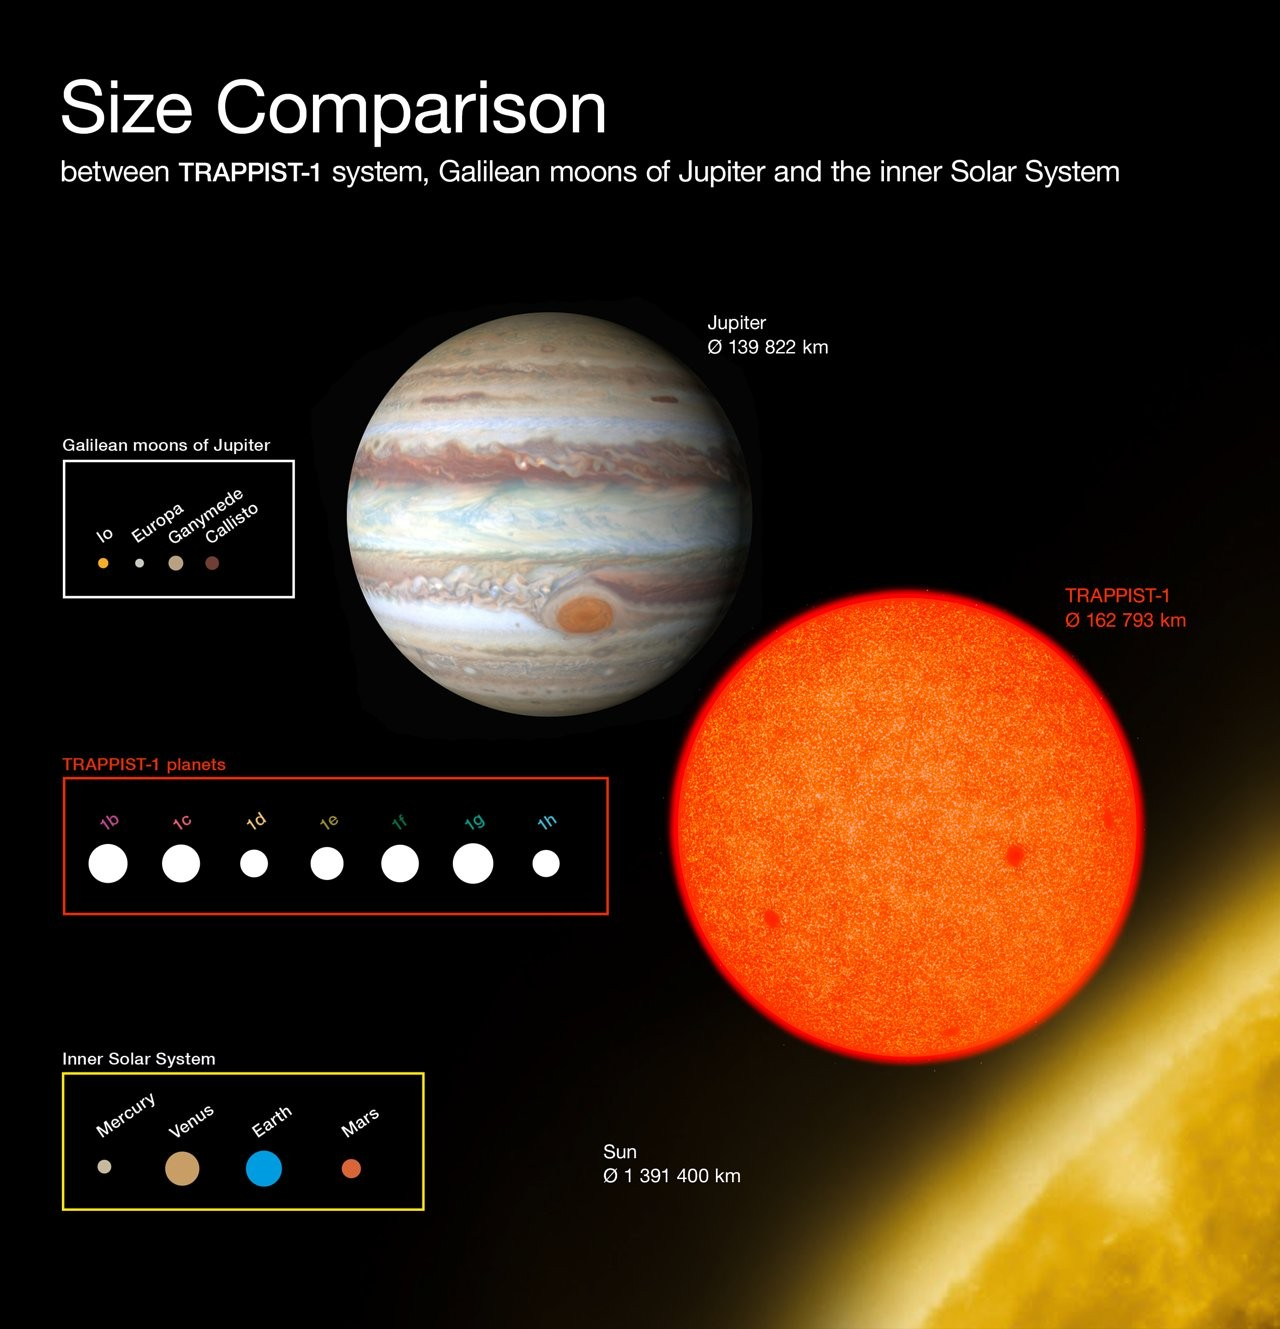 Size Comparison Diagram